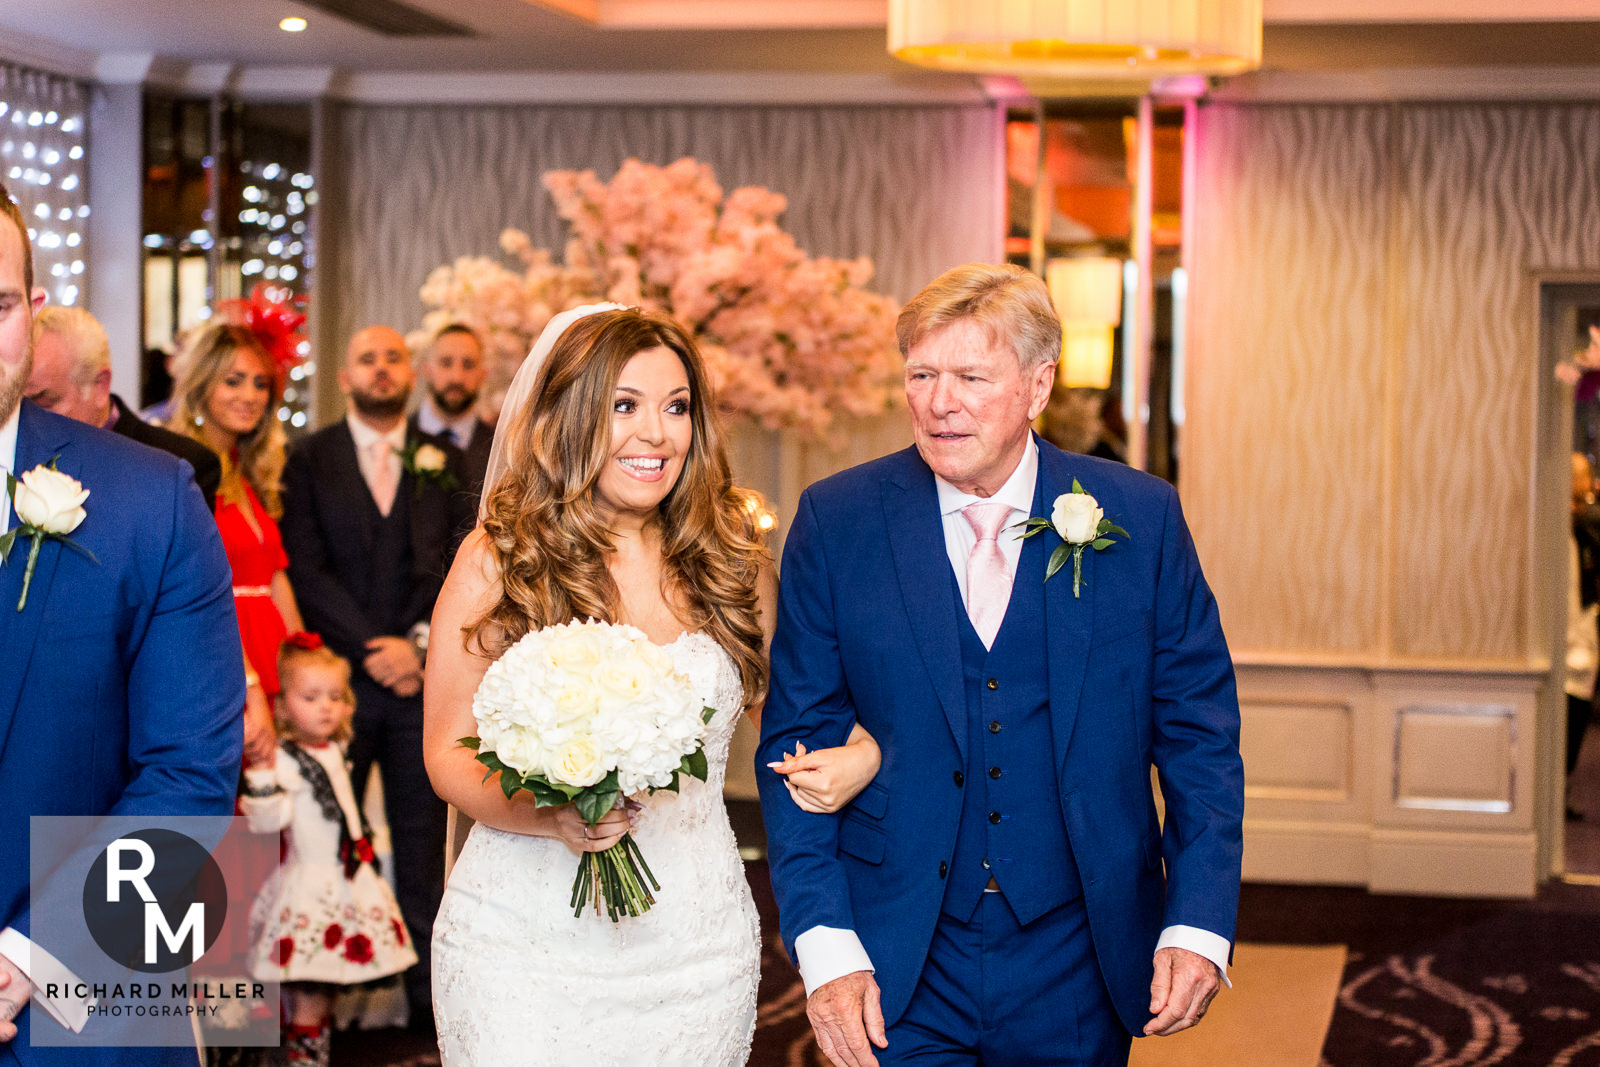 Craig Sharnah Web 90 - Grosvenor Pulford Wedding Photographer - Craig & Sharnah